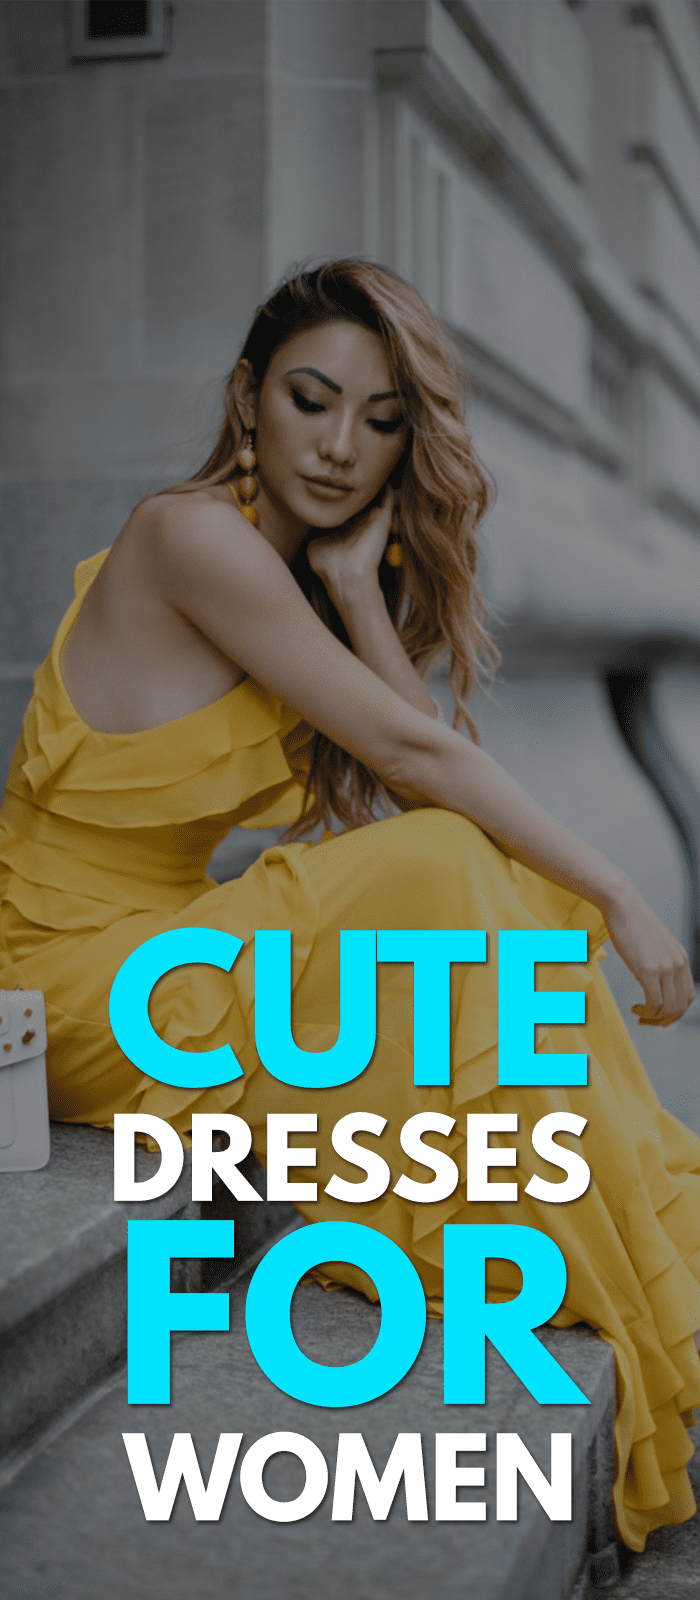 15-cute-dresses-for-women-